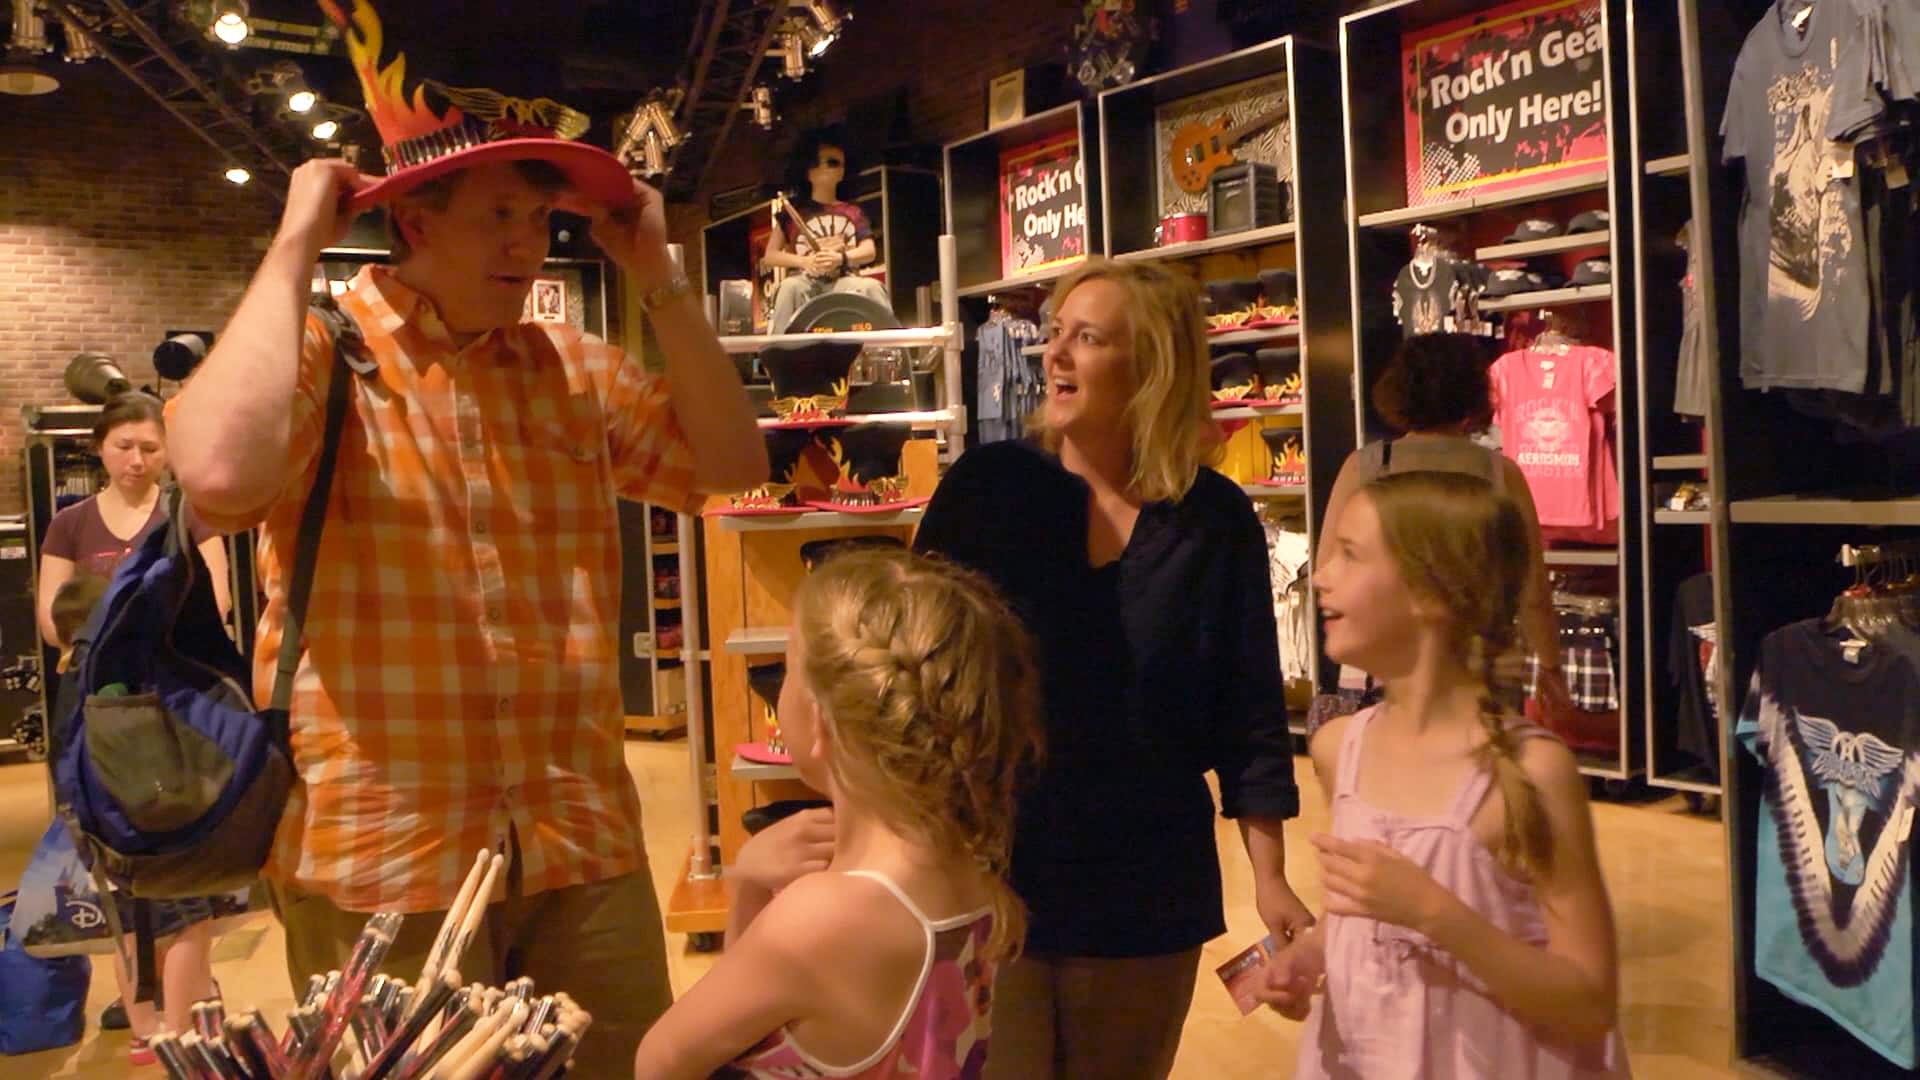 2 girls and their mother laugh as their father puts on a flamboyant hat in a gift shop